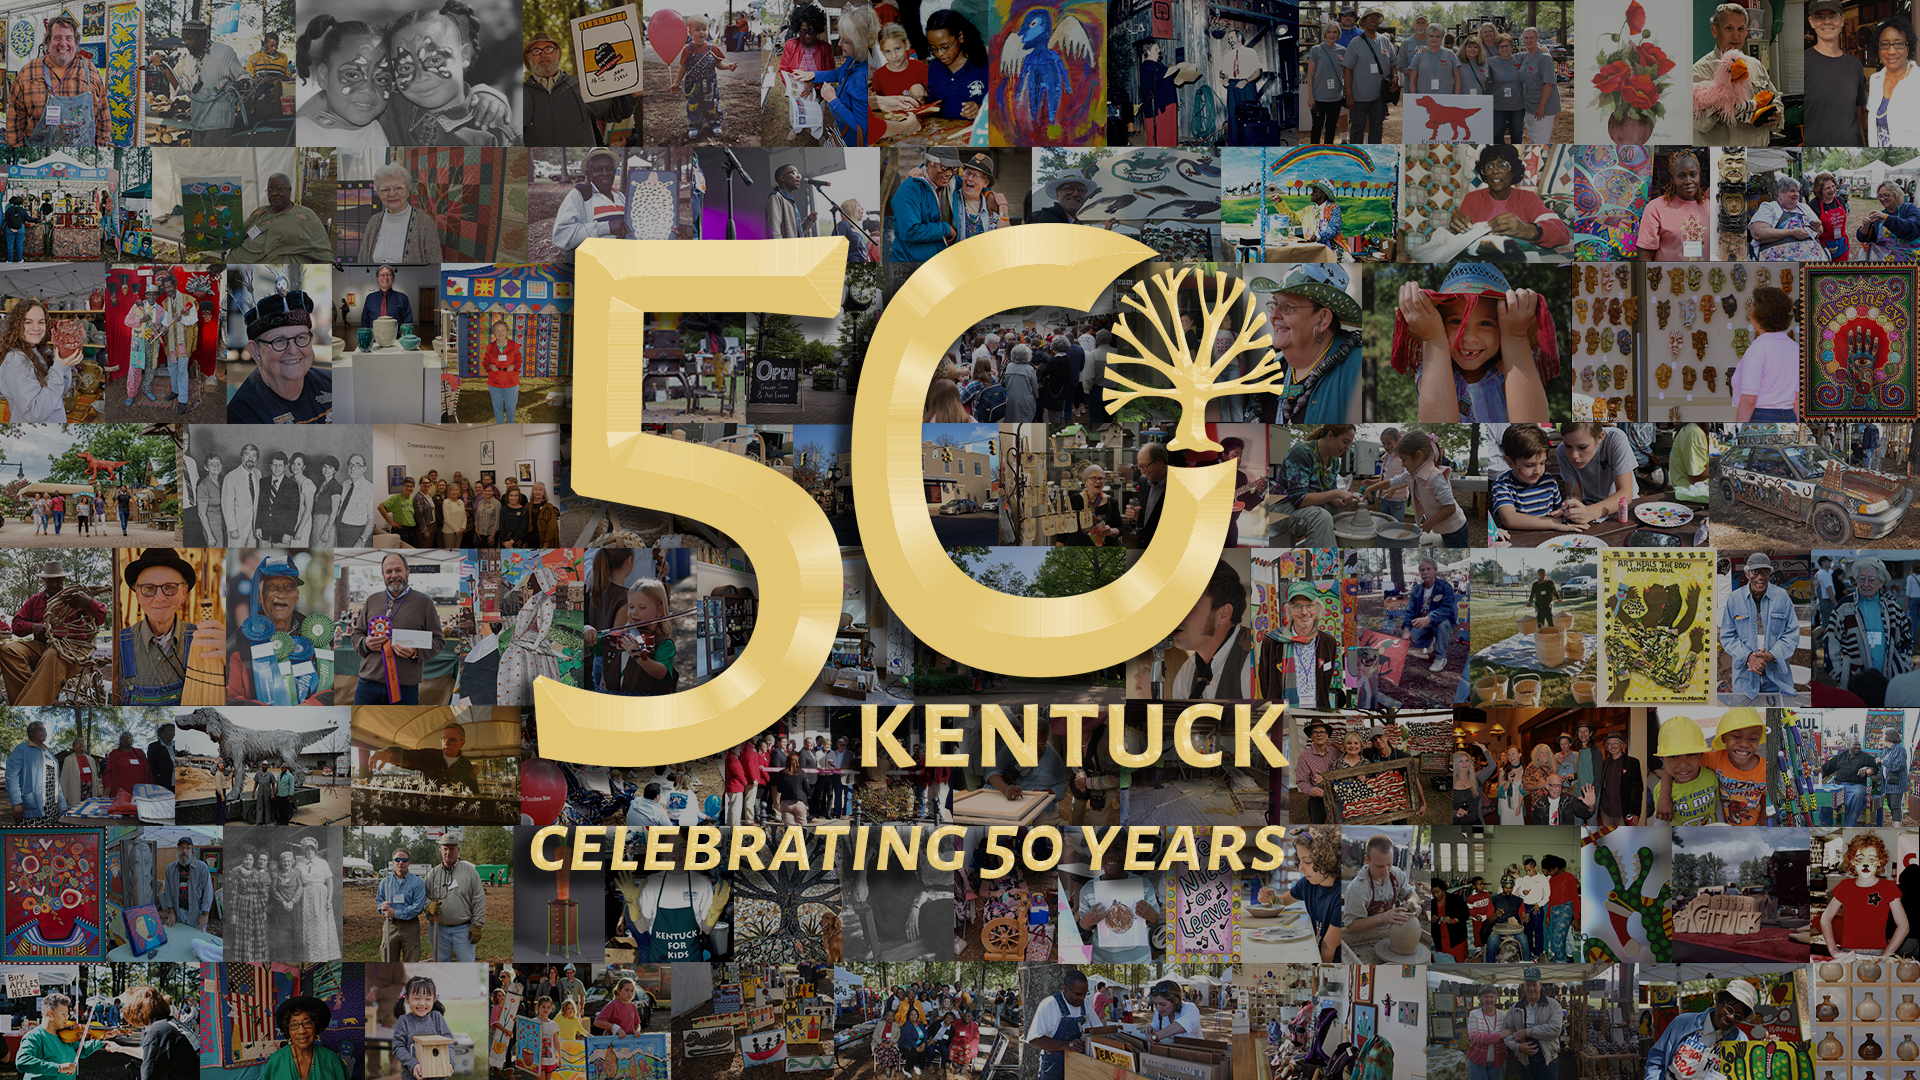 The 50th Kentuck Festival of the Arts